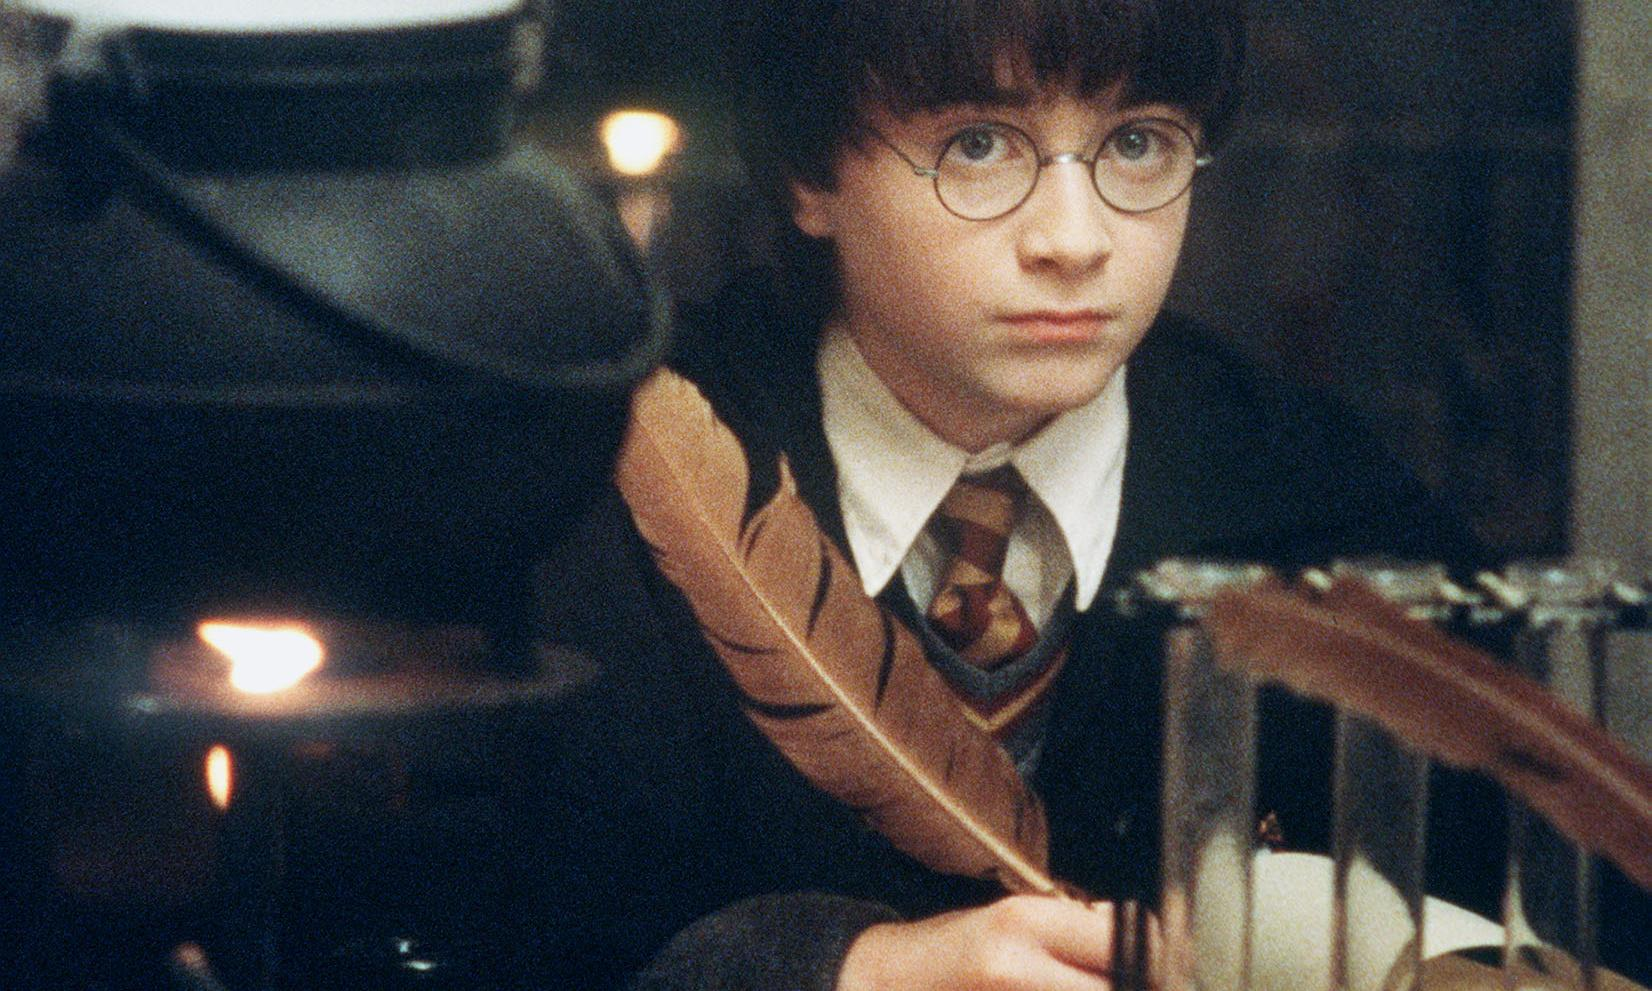 JK Rowling's Pottermore to publish four short books on the history of magic